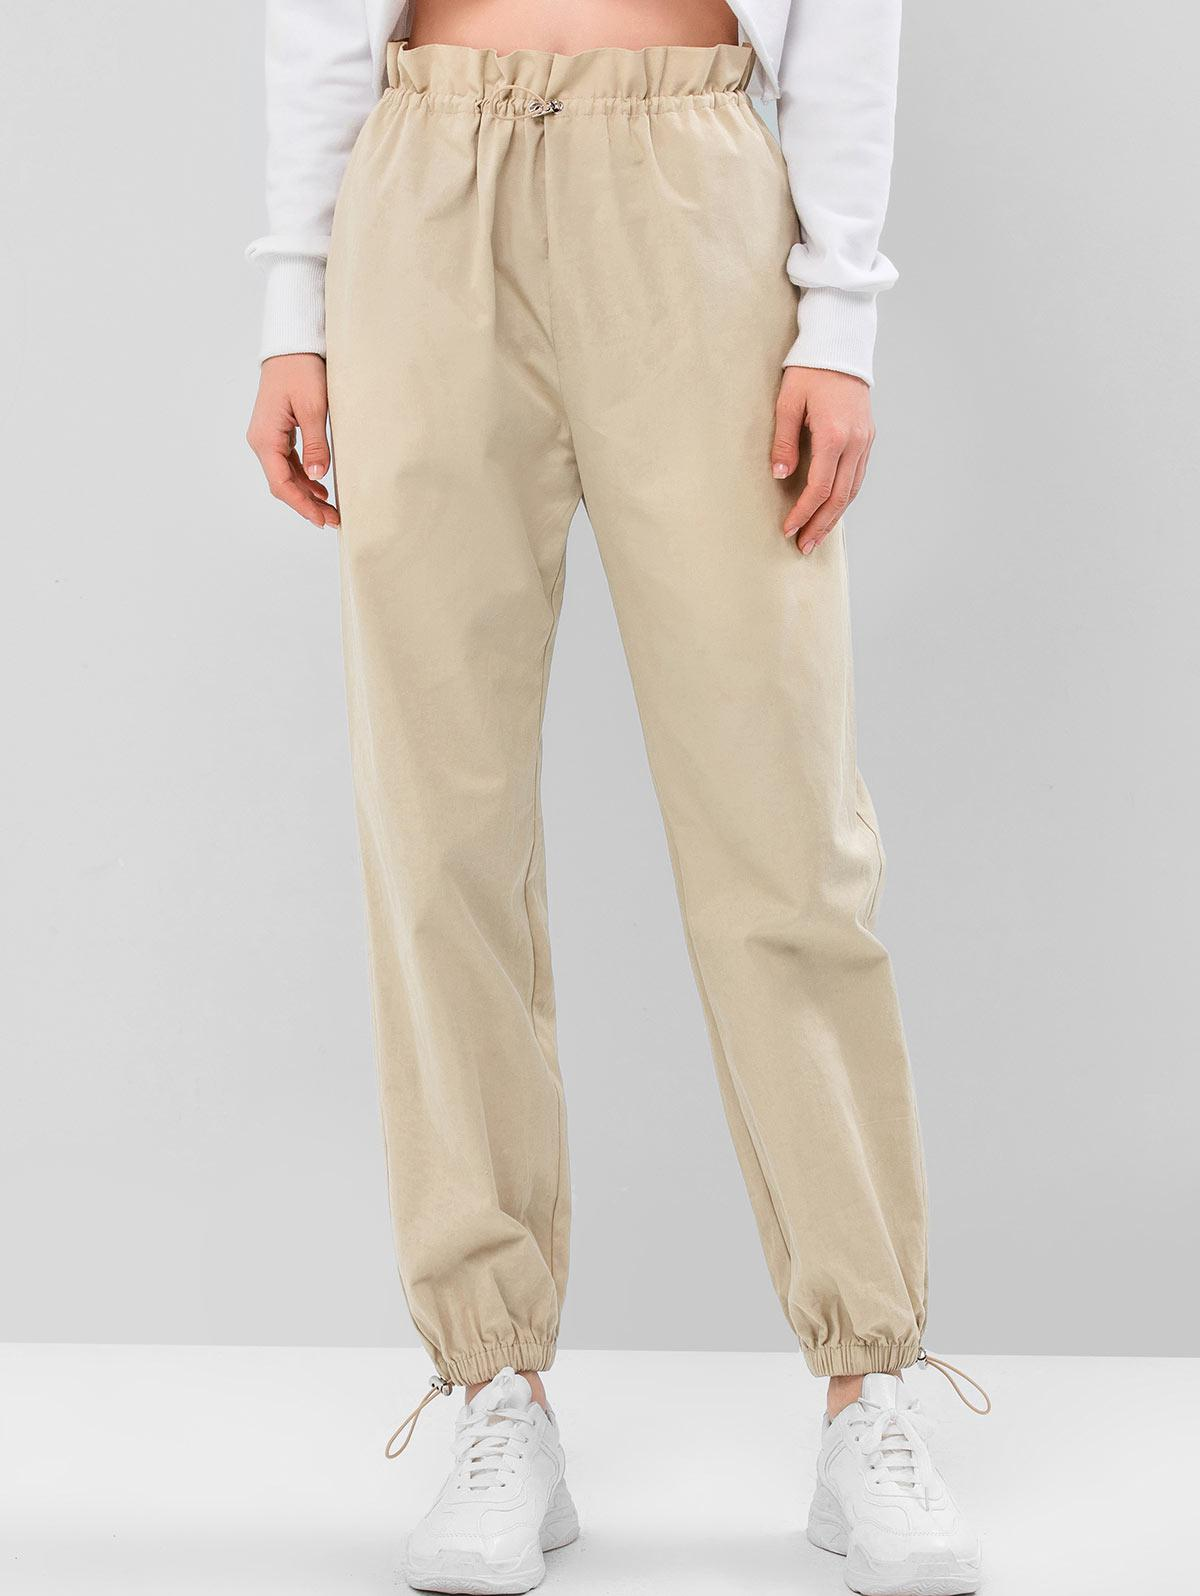 ZAFUL Solid Color Drawstring Jogger Pants